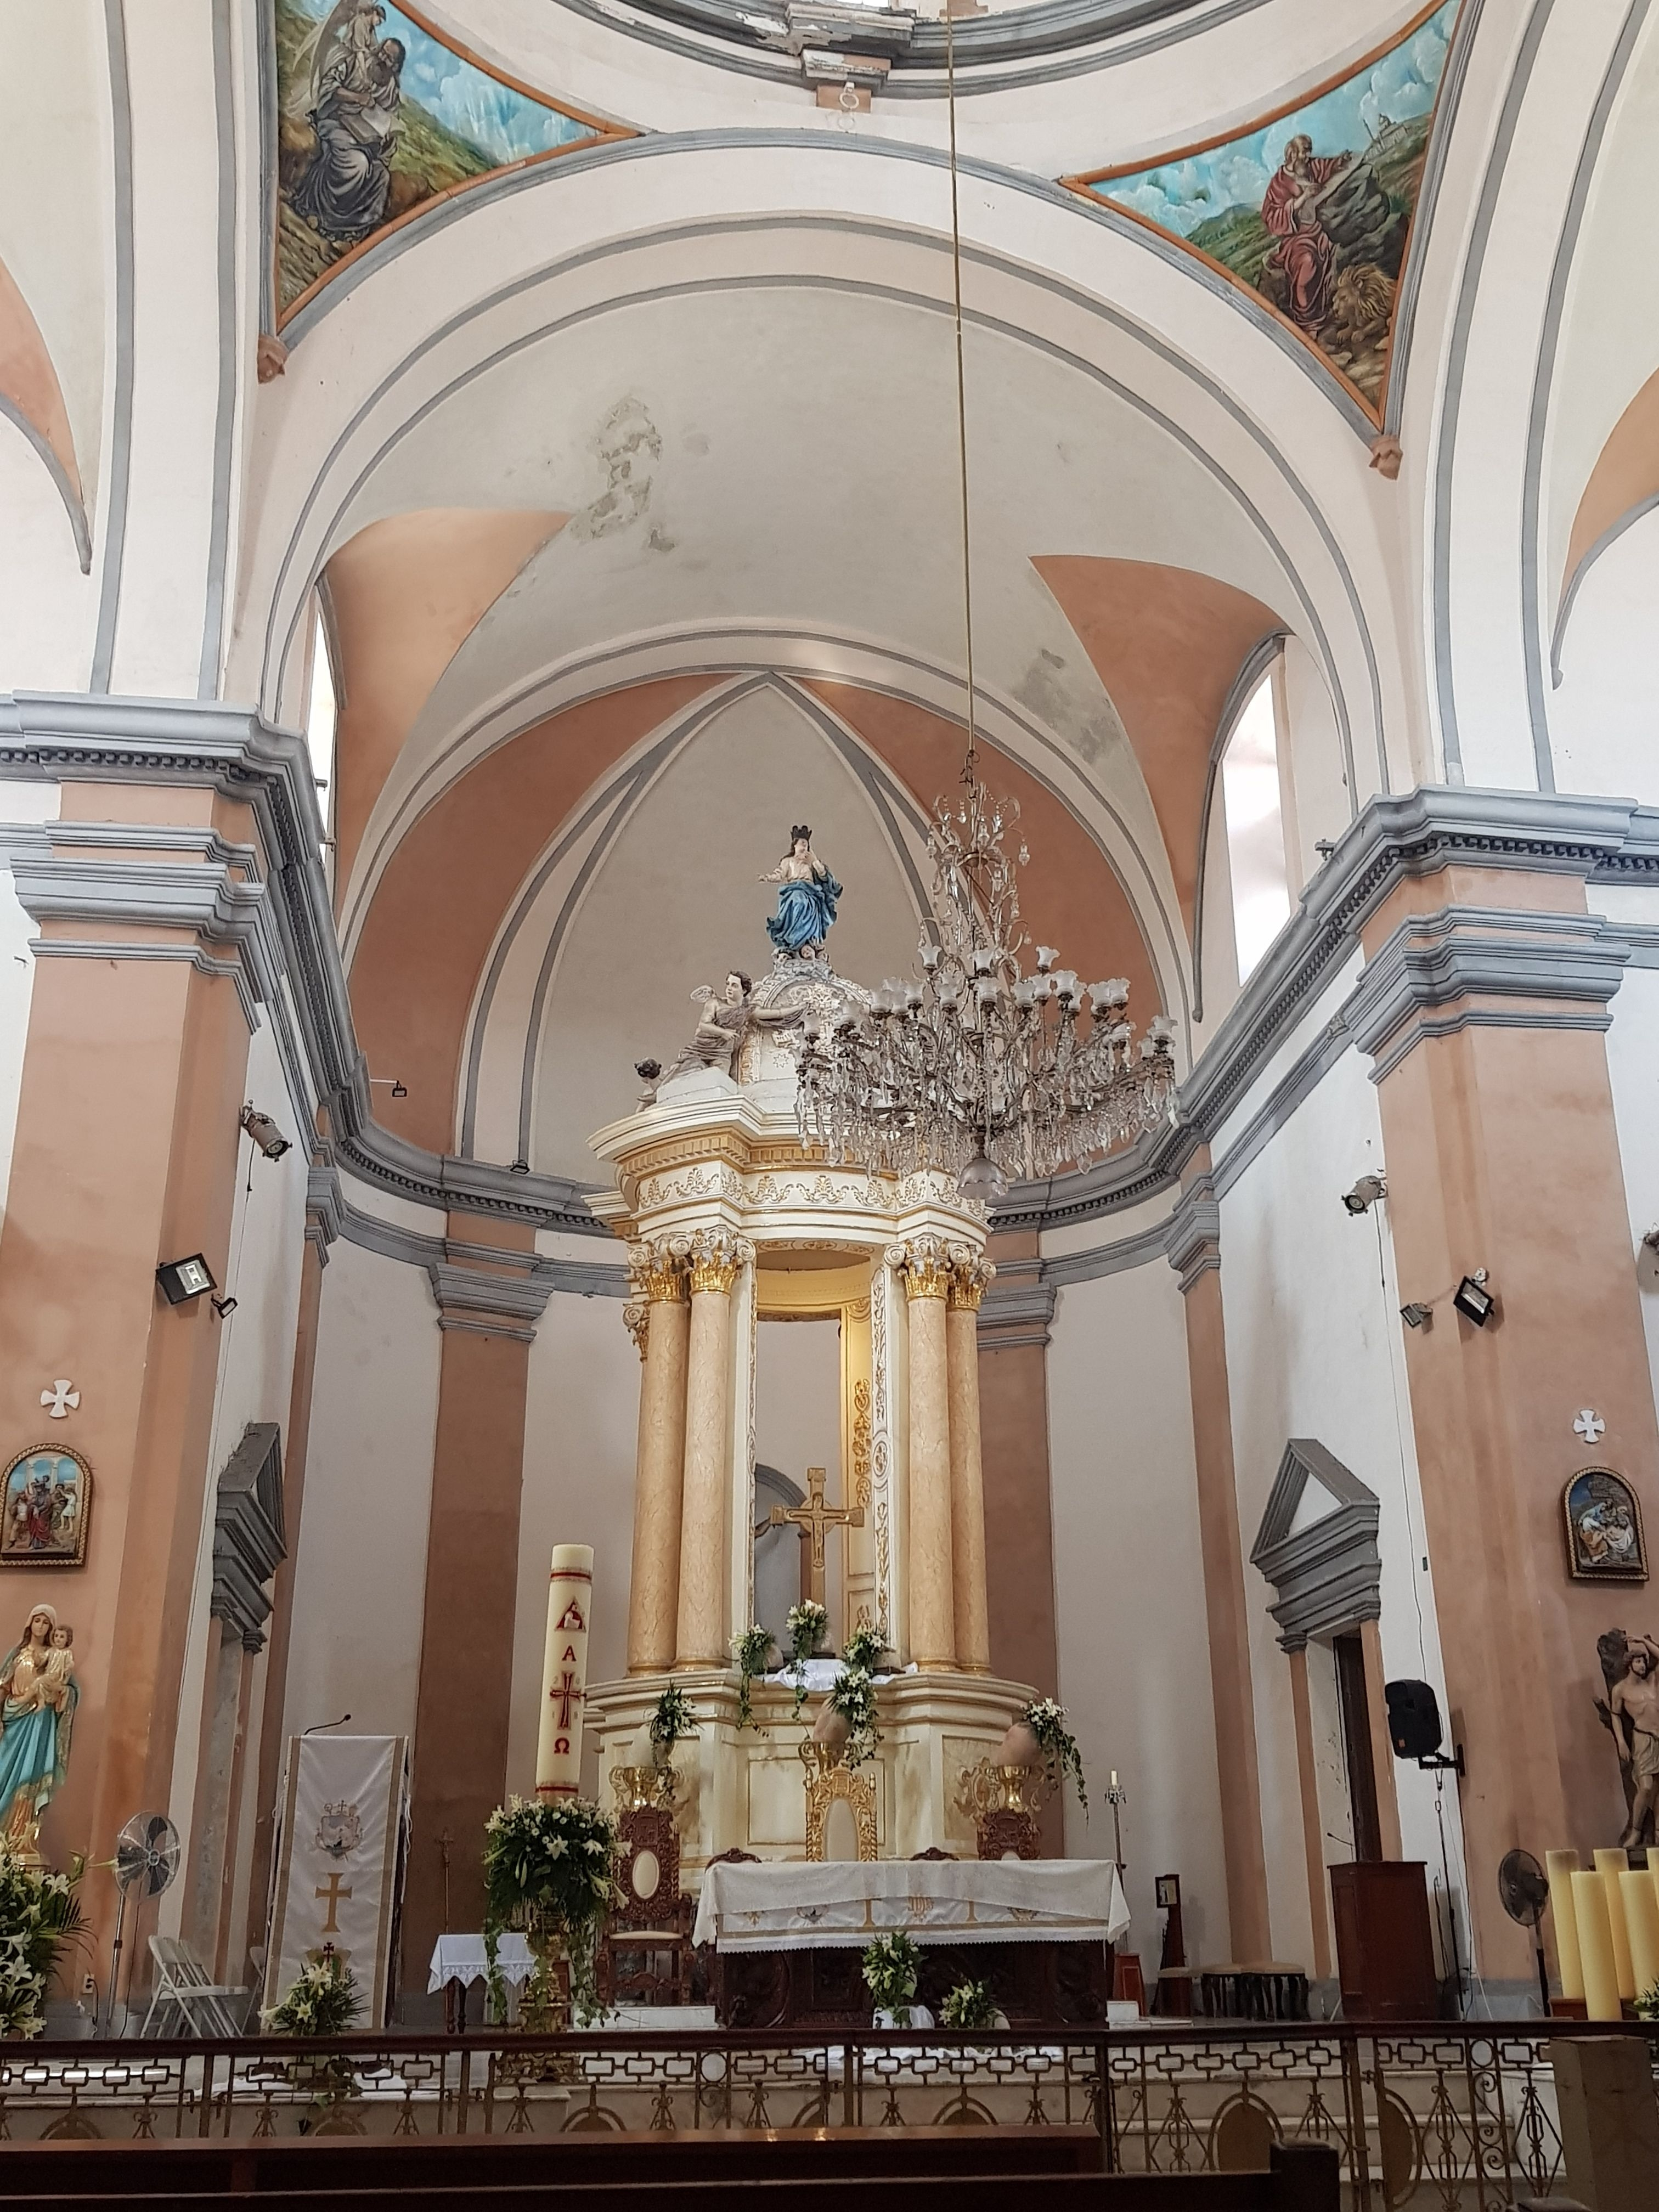 An interior view of the Cathedral of Veracruz, mentioned in the marker text